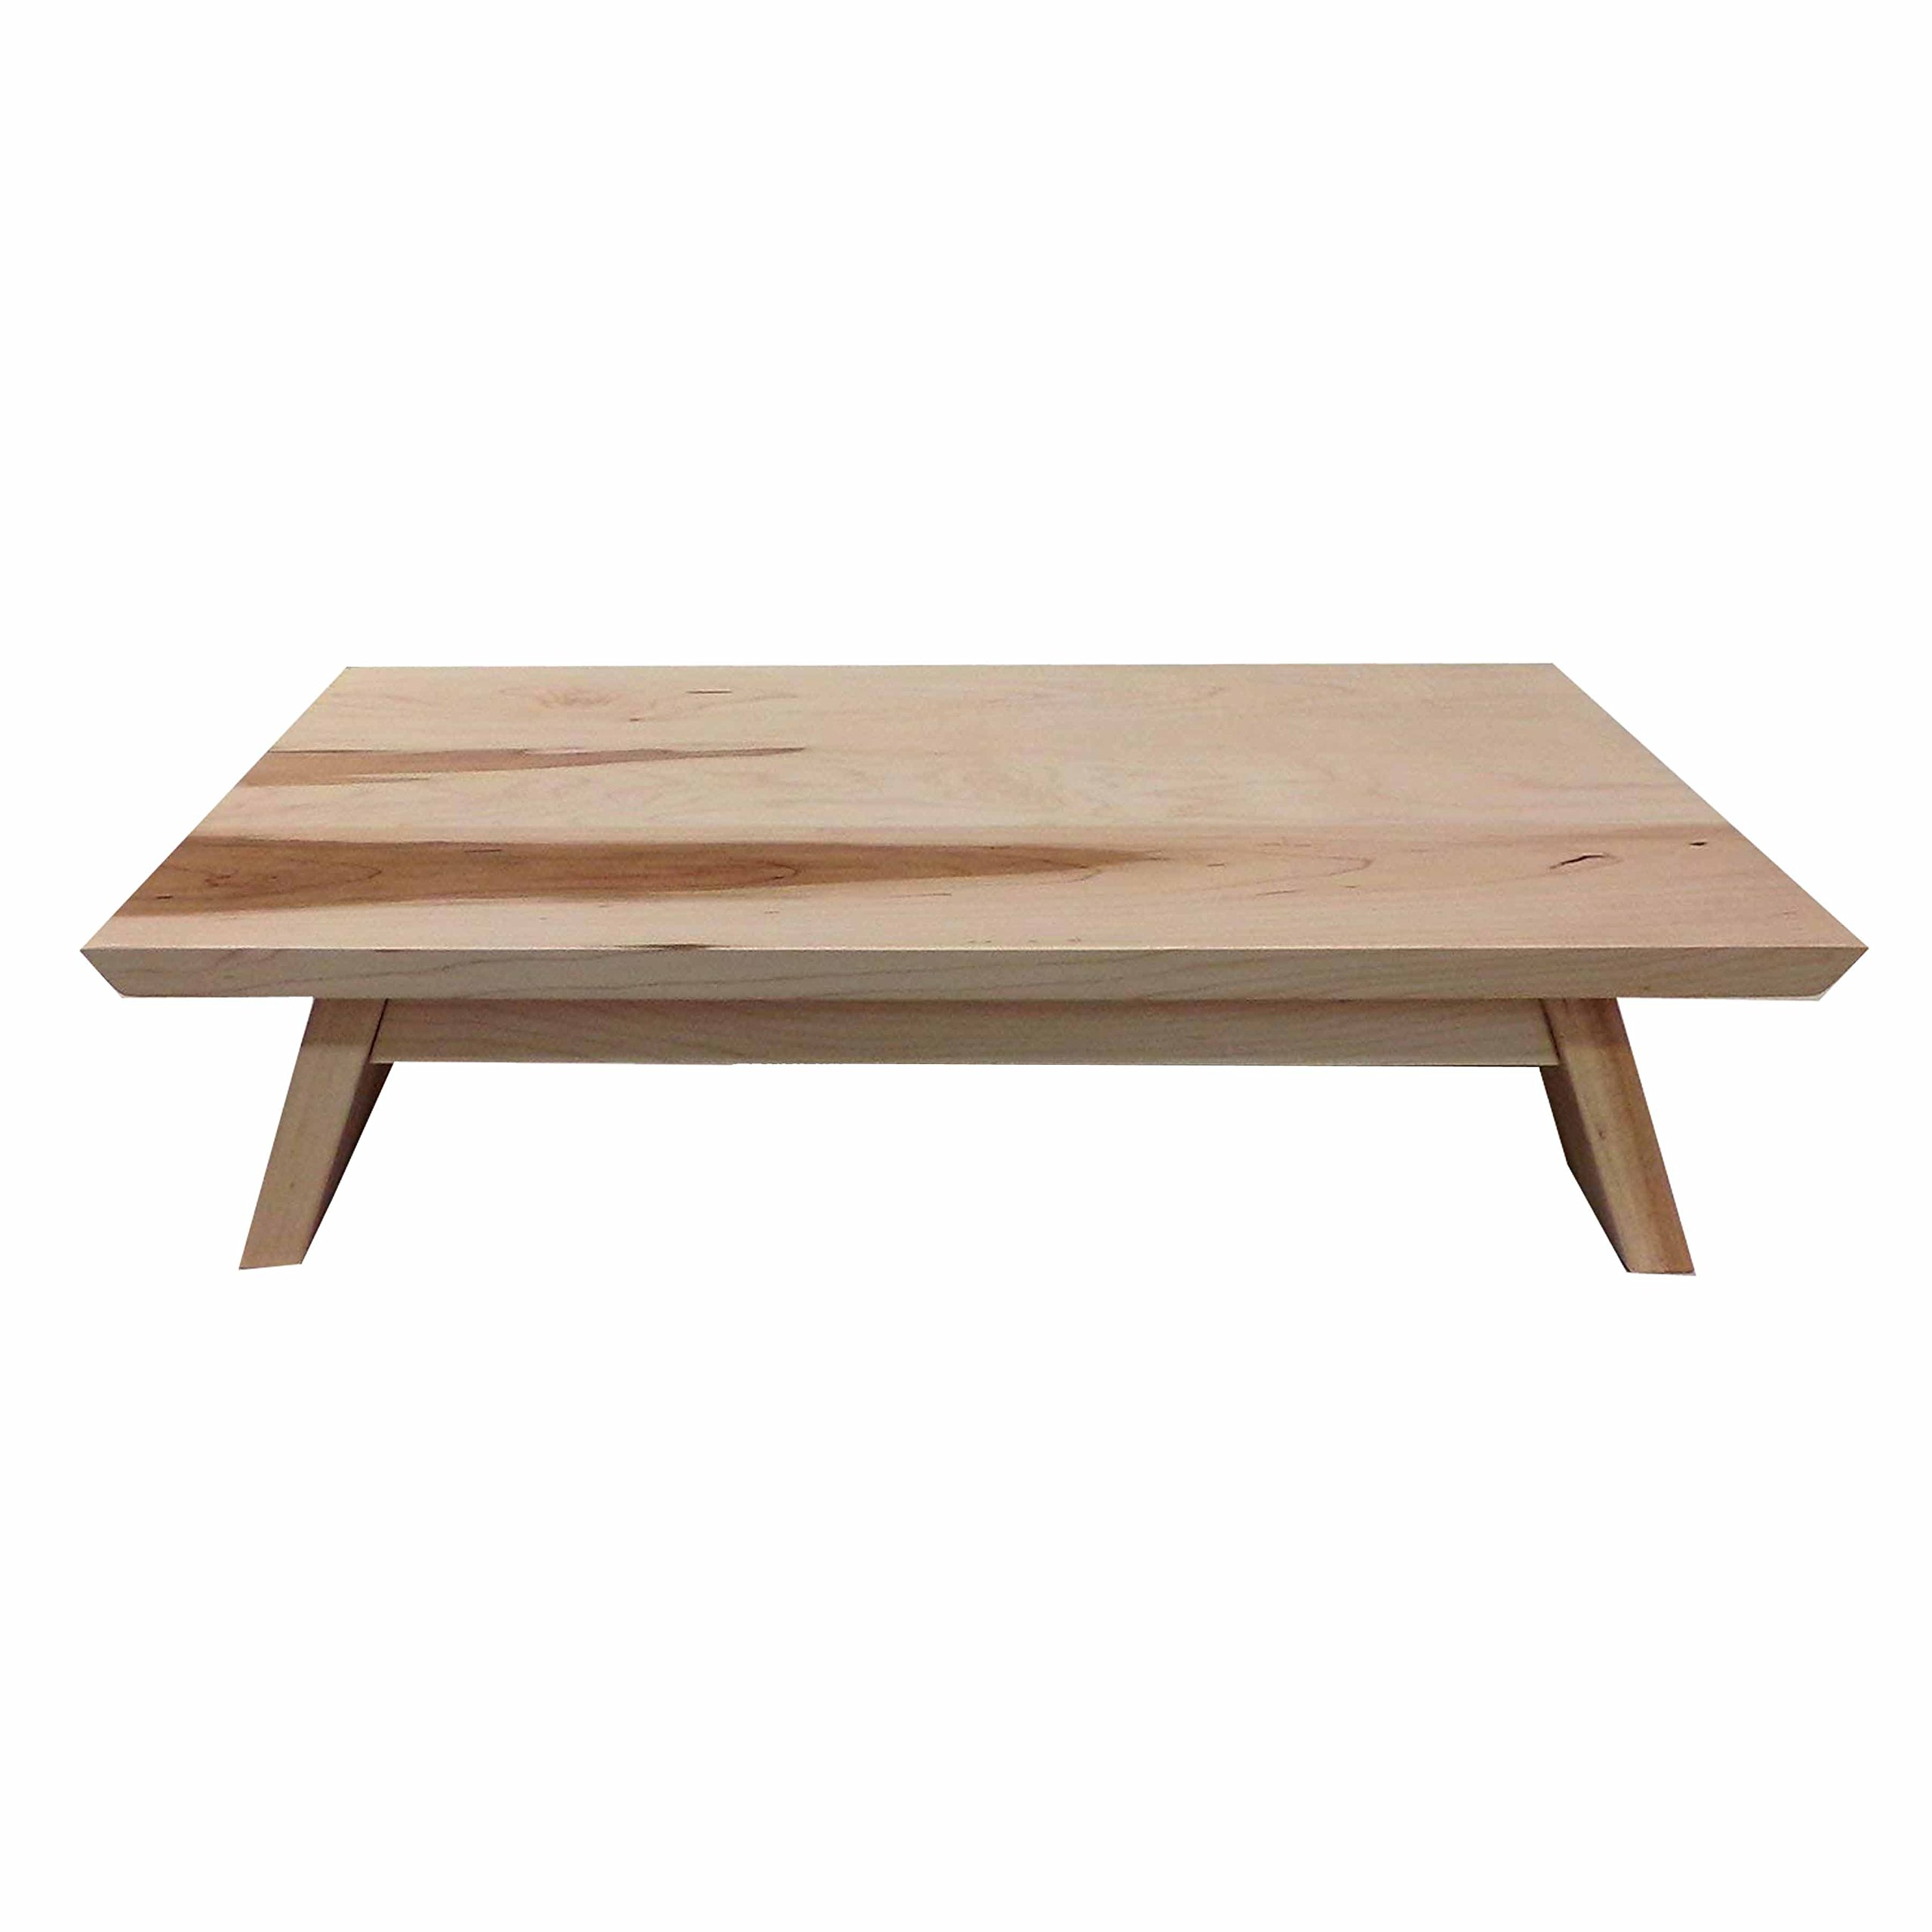 MAINE 'COASTAL' MAPLE ~ EarthBench Personal Shrine Table: Large Sized Personal Low Altar (7'' inches tall ~ 23.5'' by 13.5'') by EarthBench